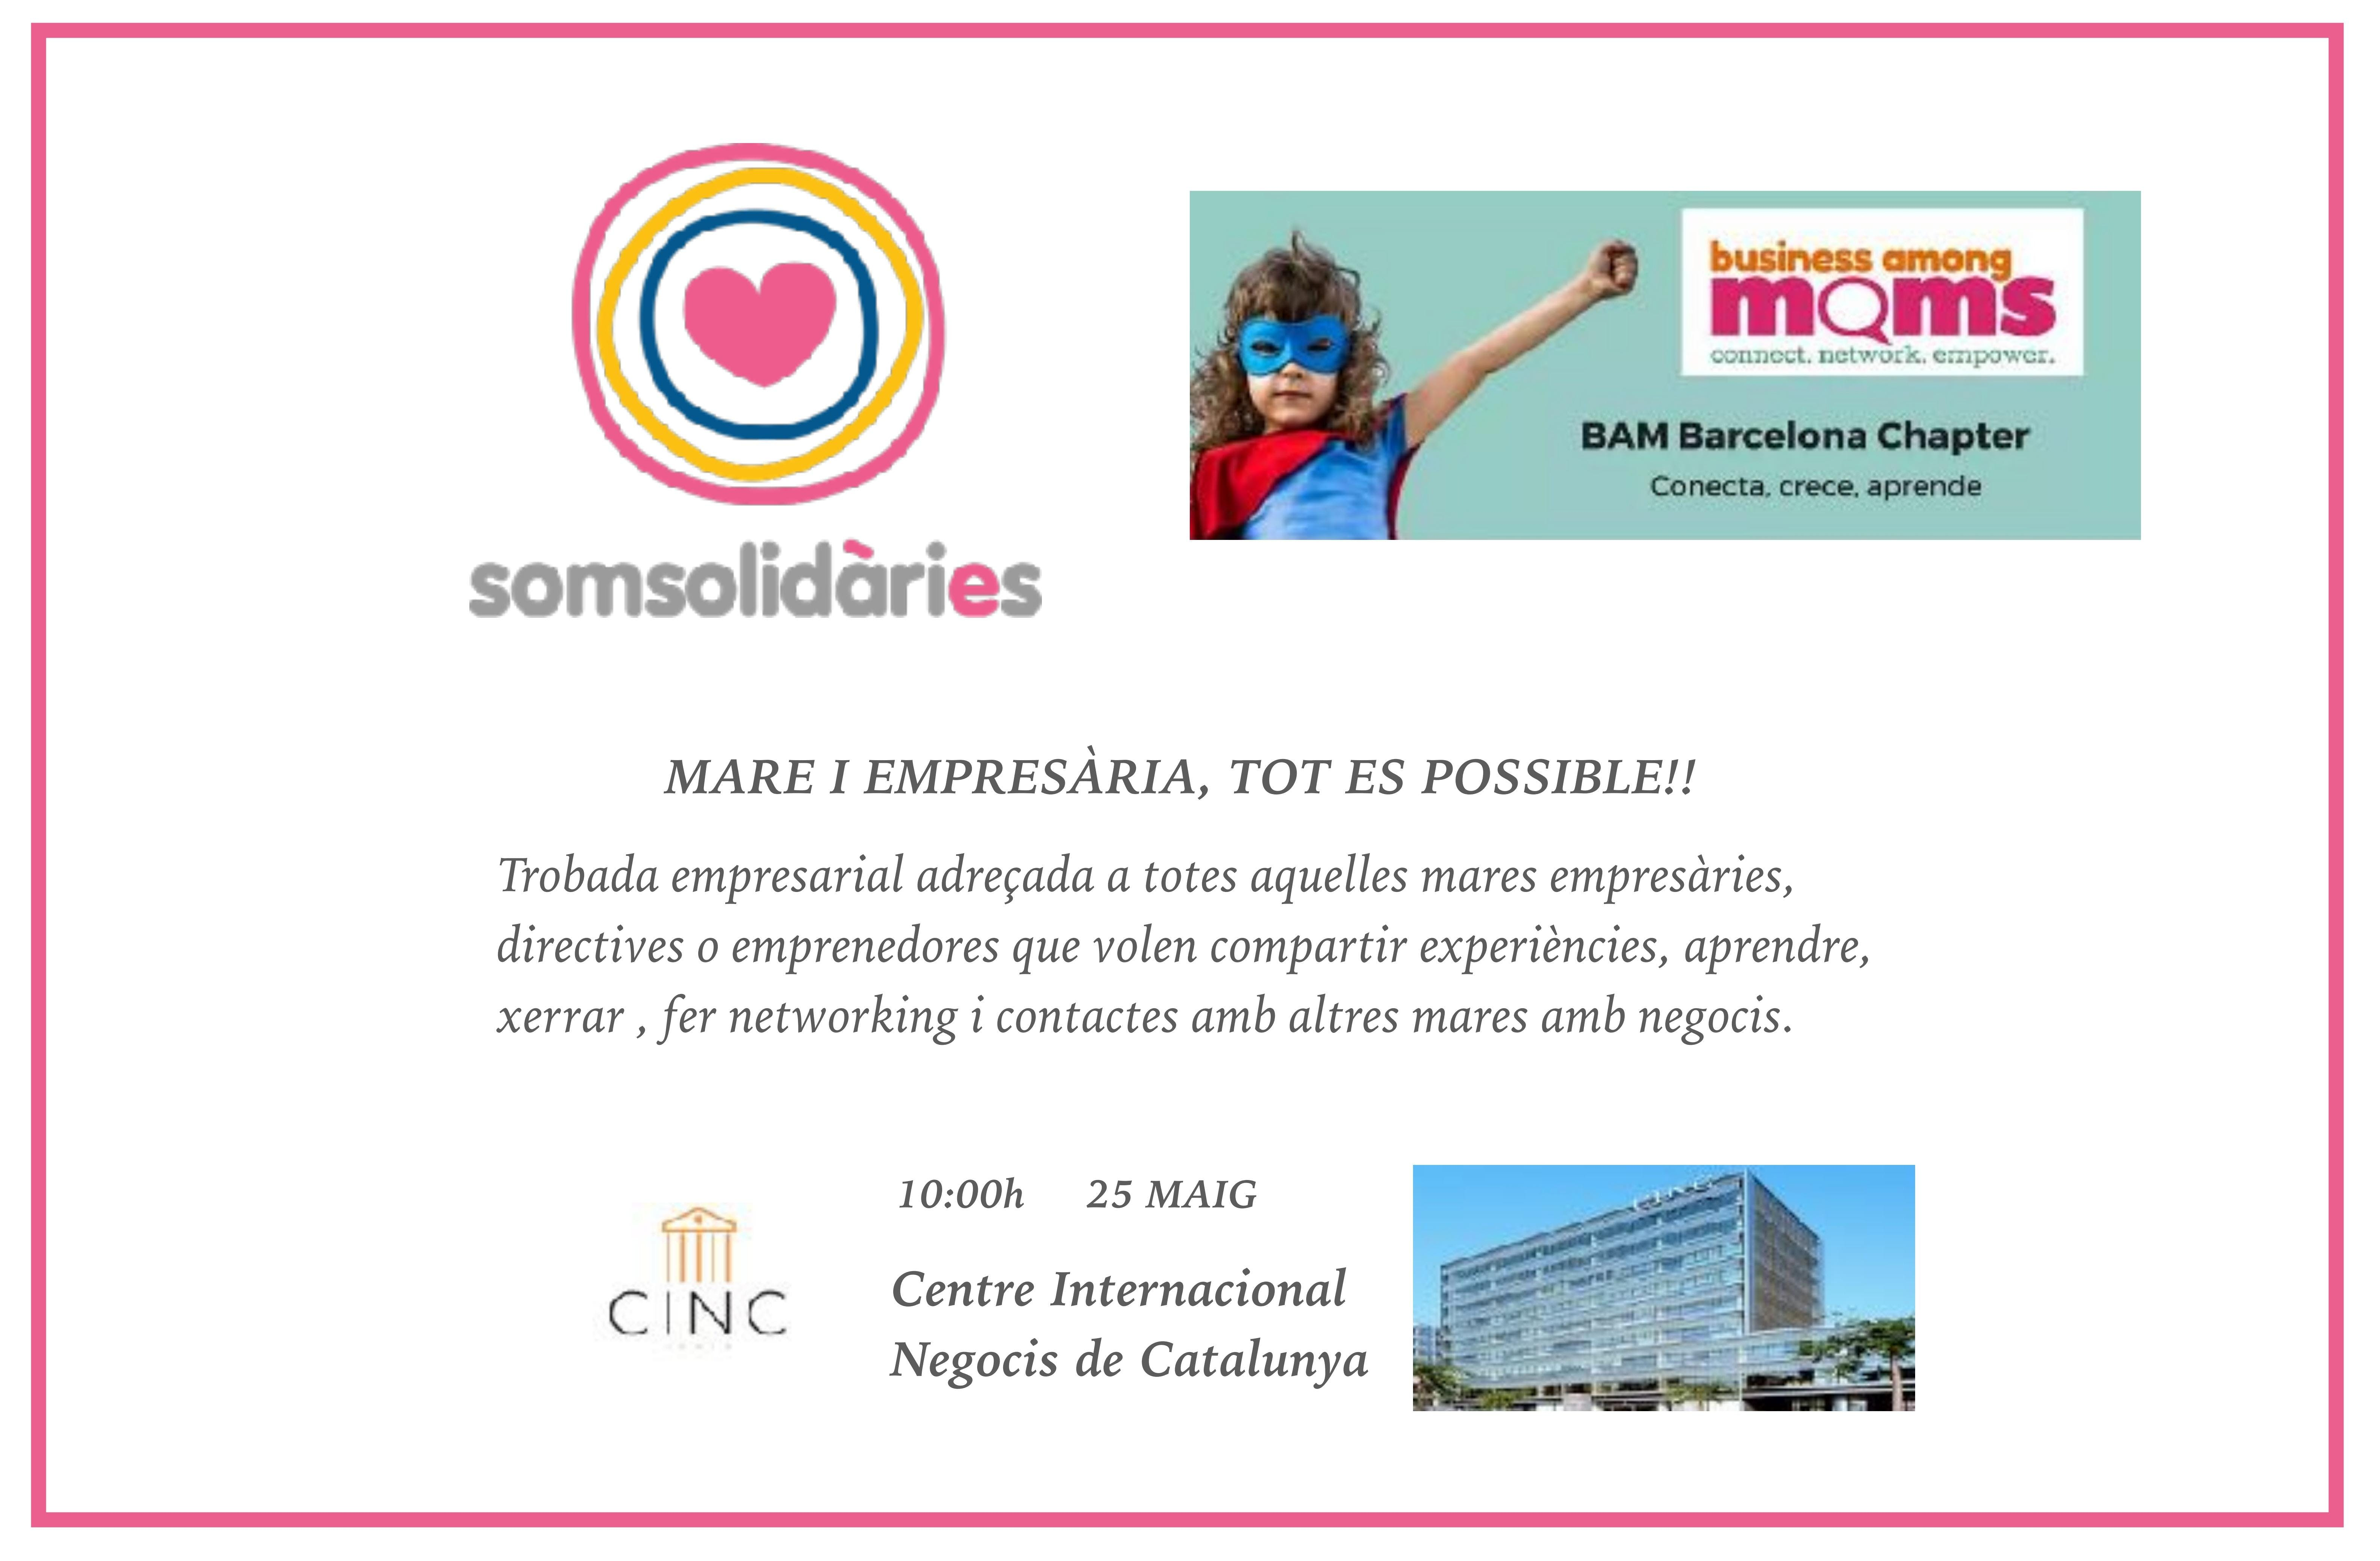 Networking: SOM SOLIDÀRIES + BAM